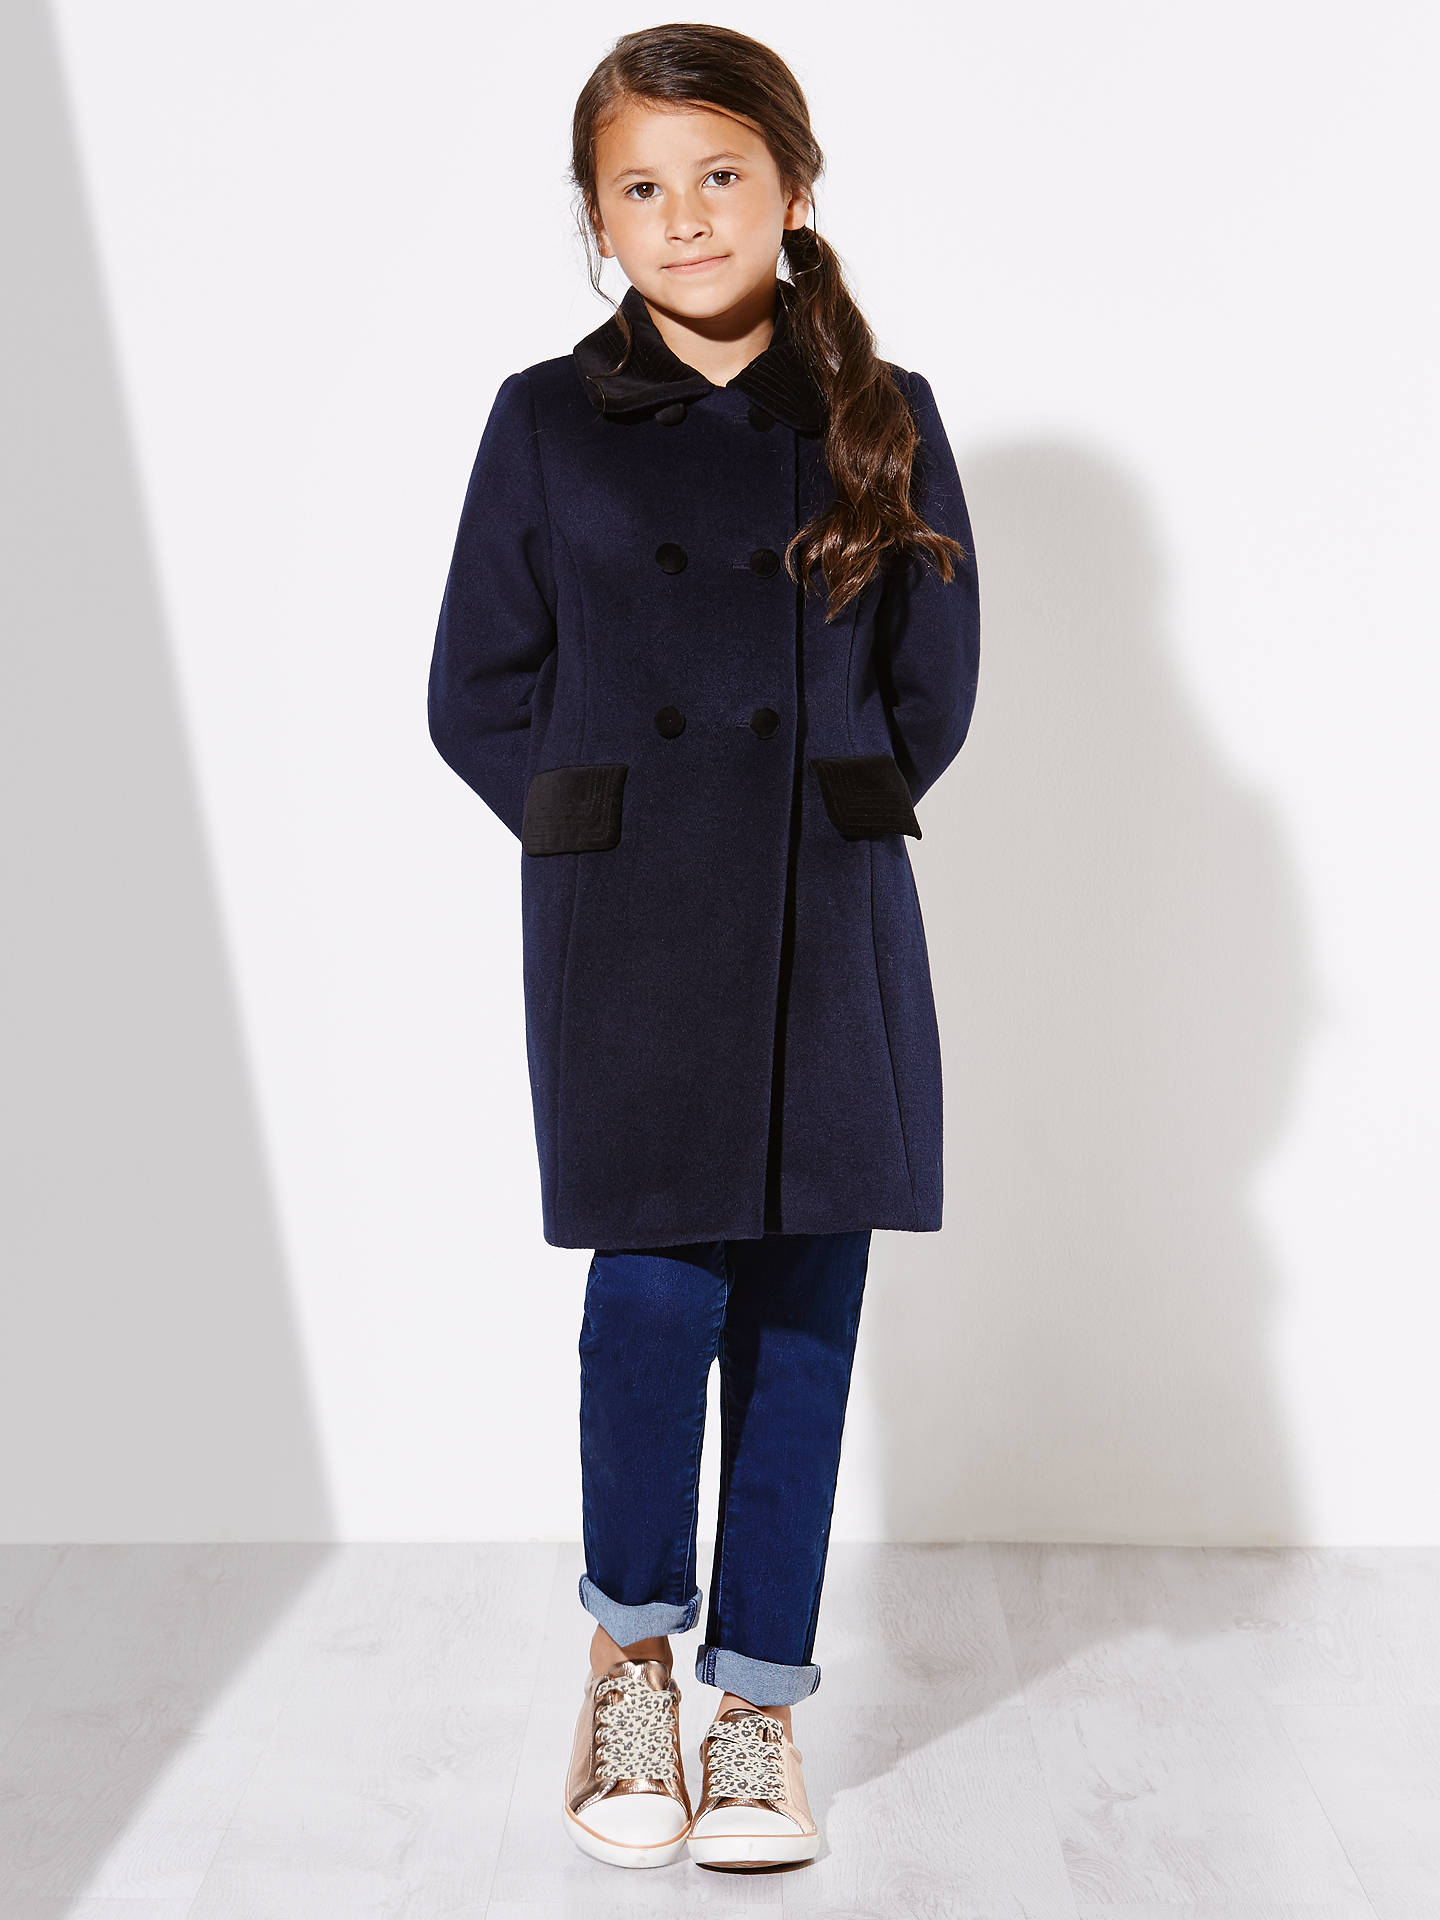 29fbfd642d3 ... Buy John Lewis Girls' Formal Velvet Collar Coat, Peacoat, 2 years  Online at ...